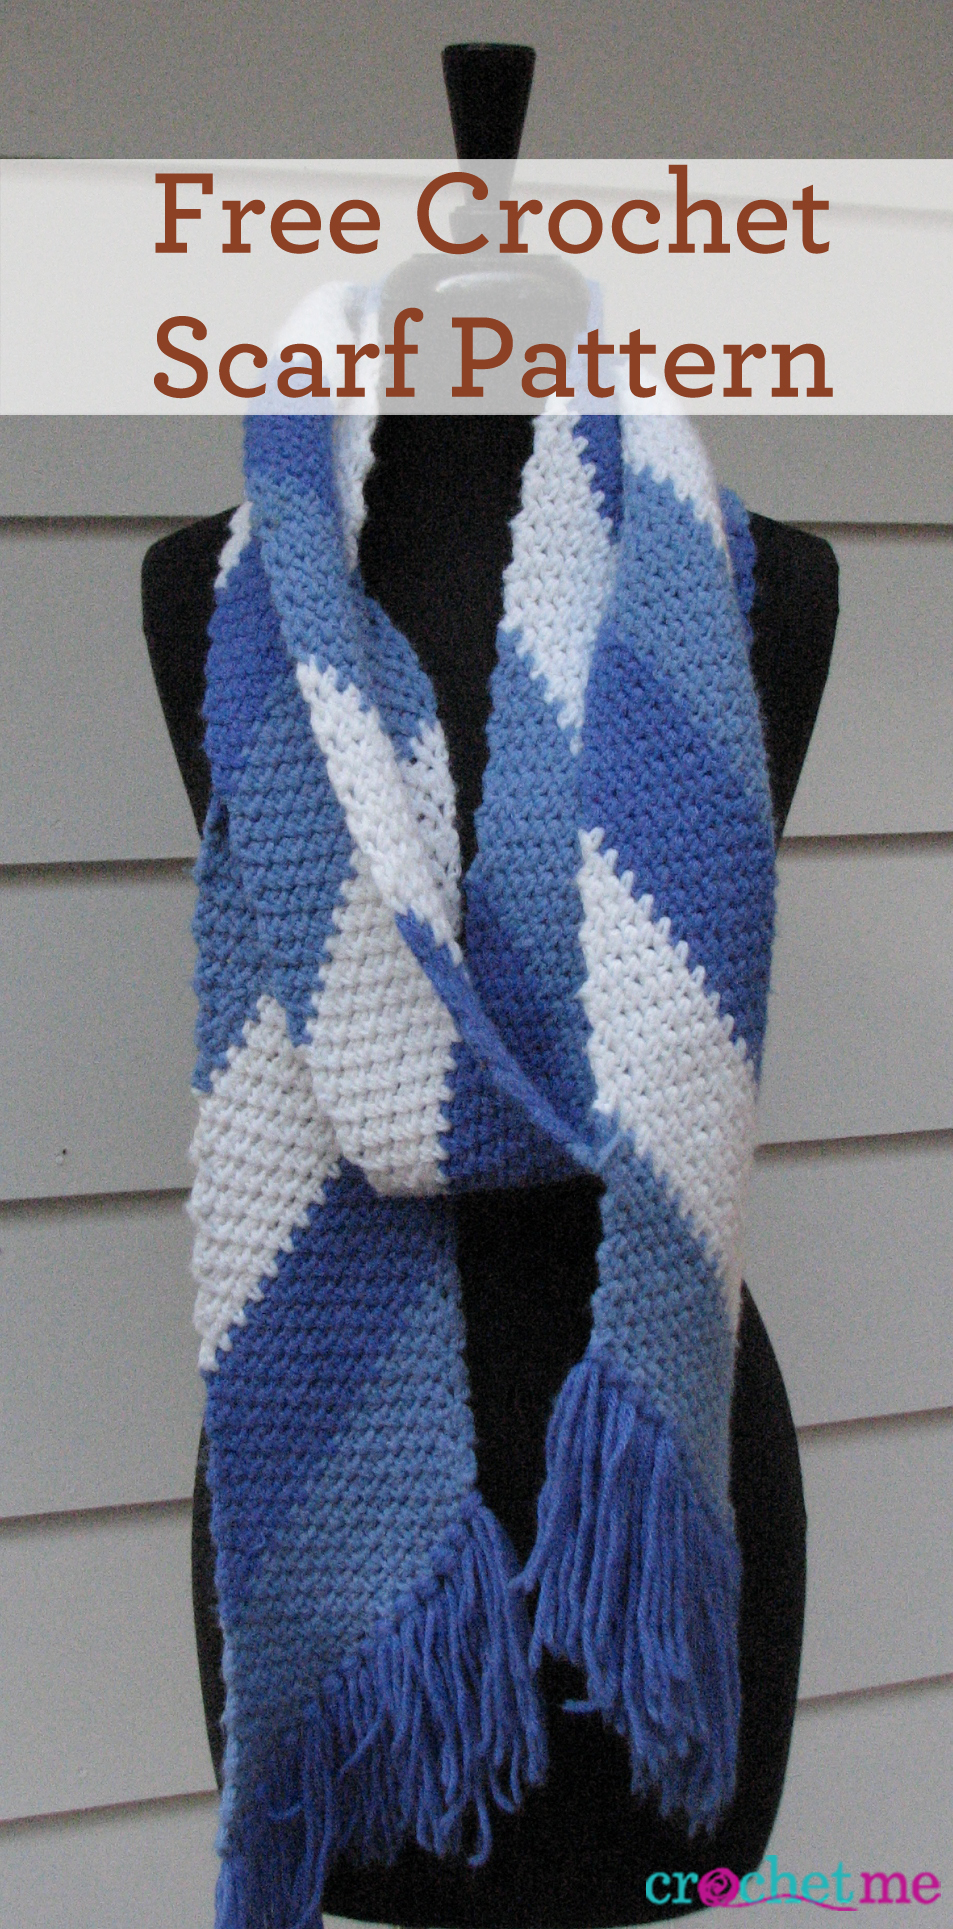 Free Crochet Scarf Pattern - Quick enough to make as a gift.